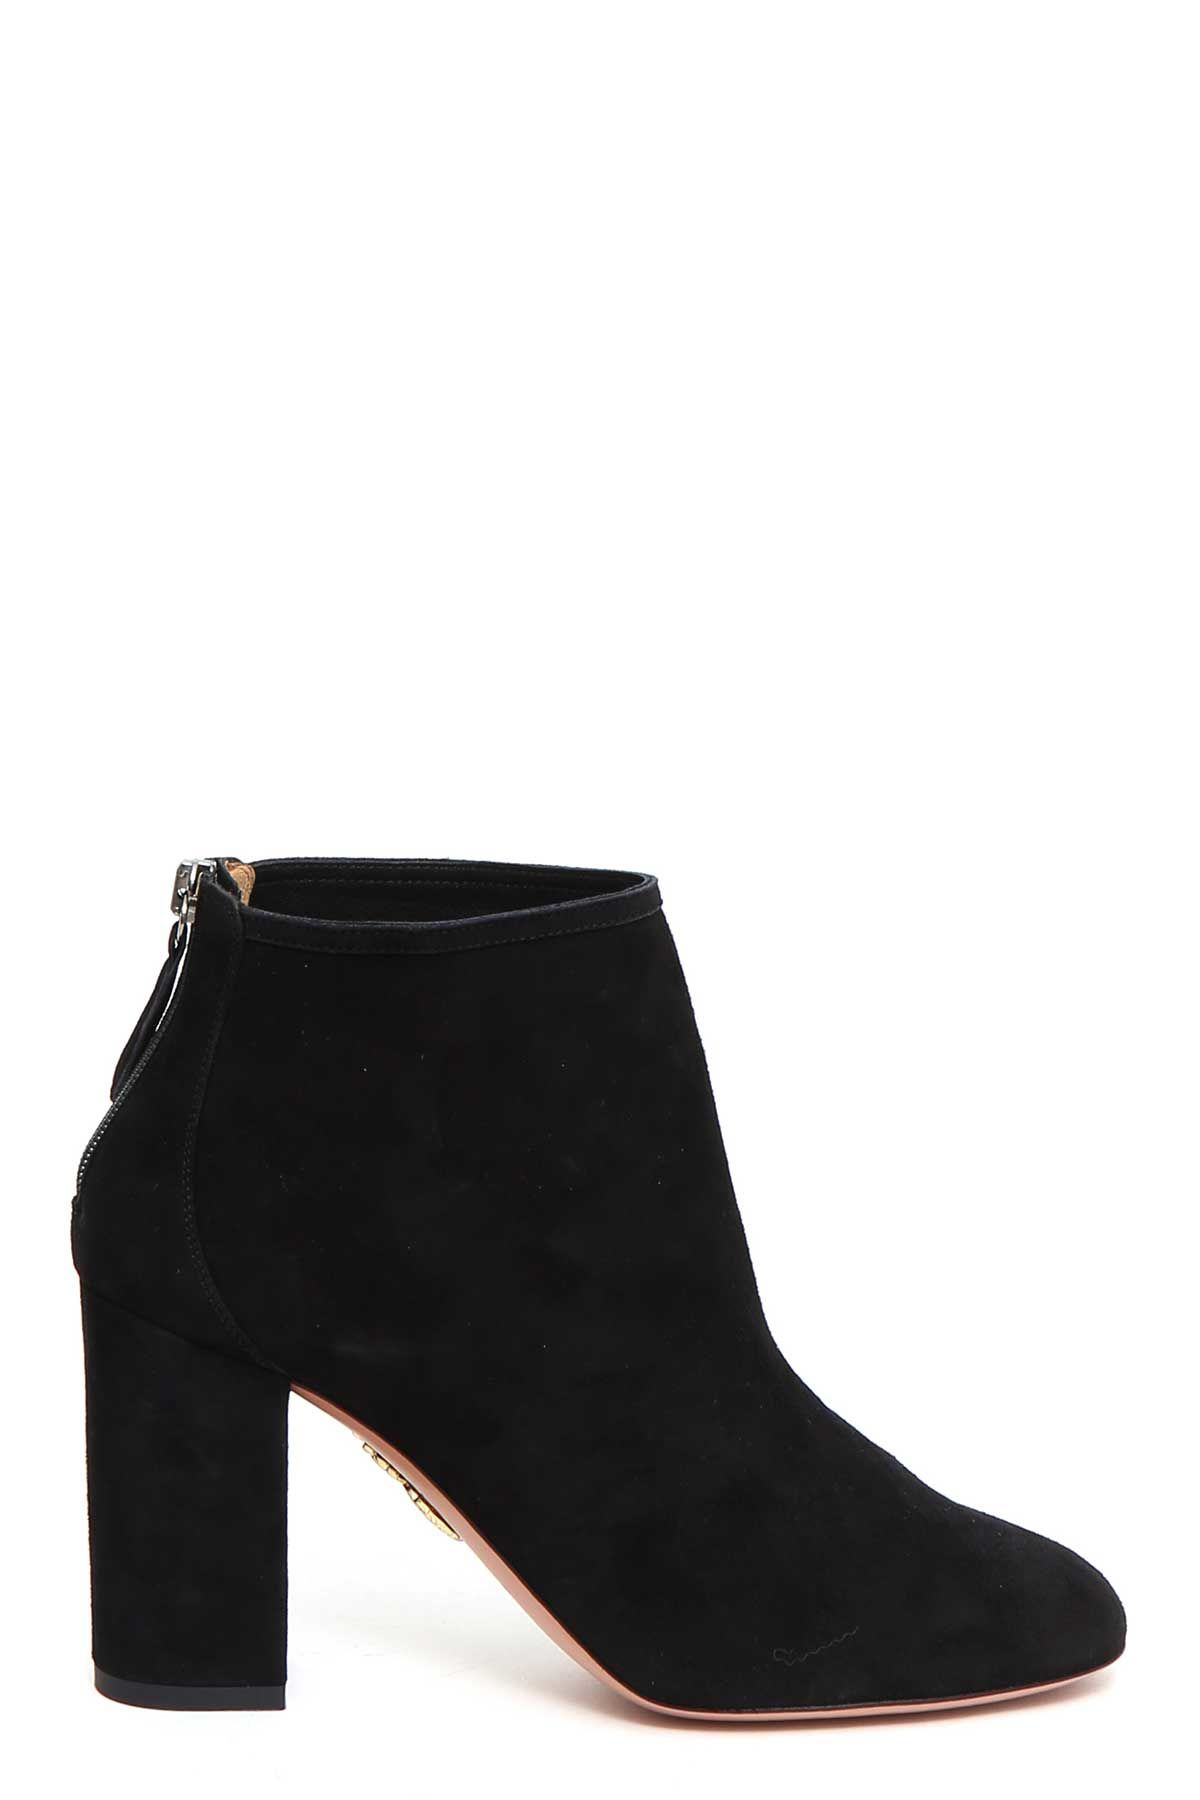 Aquazzura downtown Suede Bootie